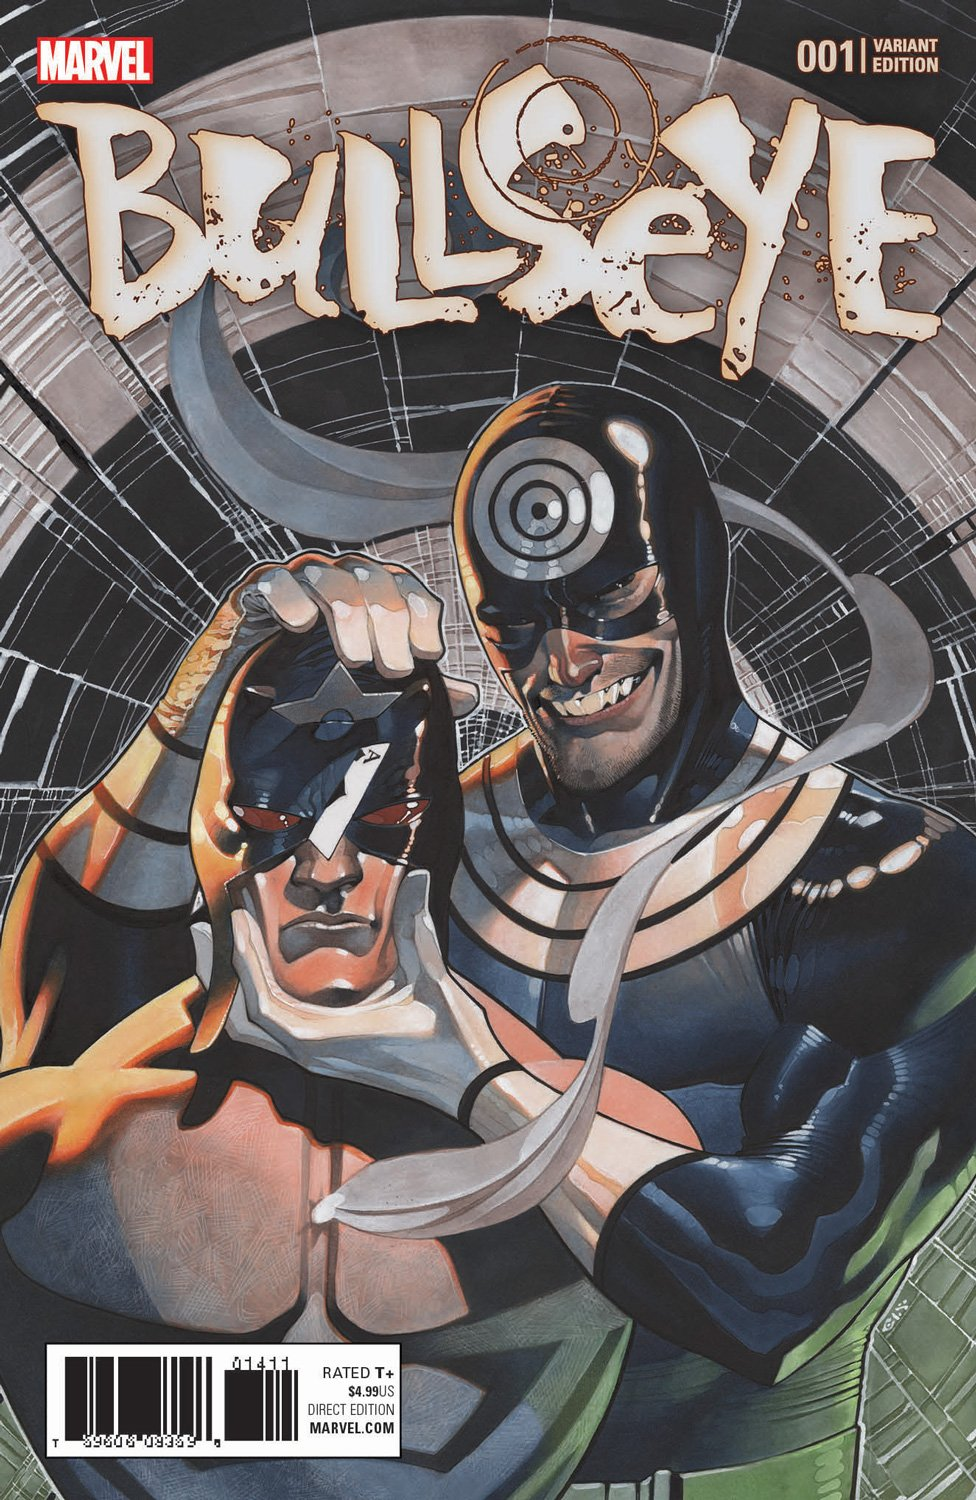 Ed Brisson Is On Target With New Bullseye Miniseries